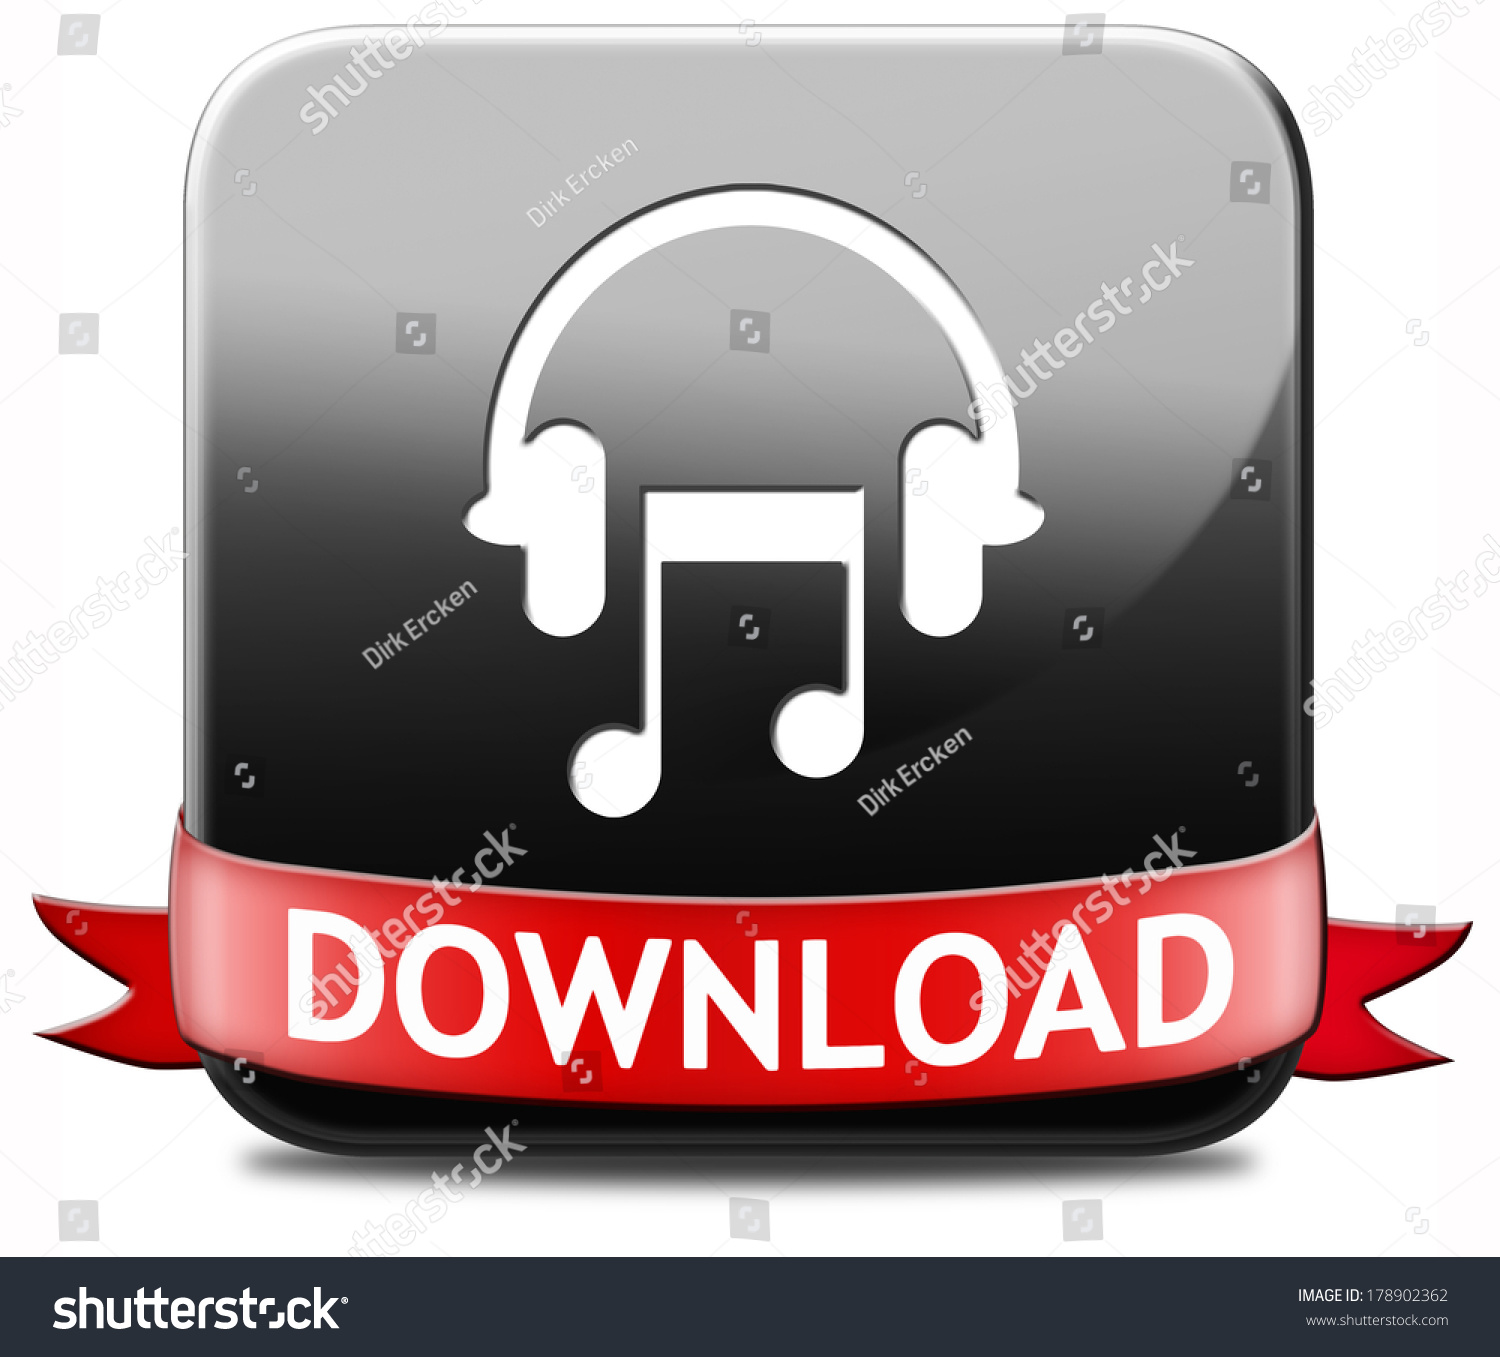 Where can you listen to songs before downloading?